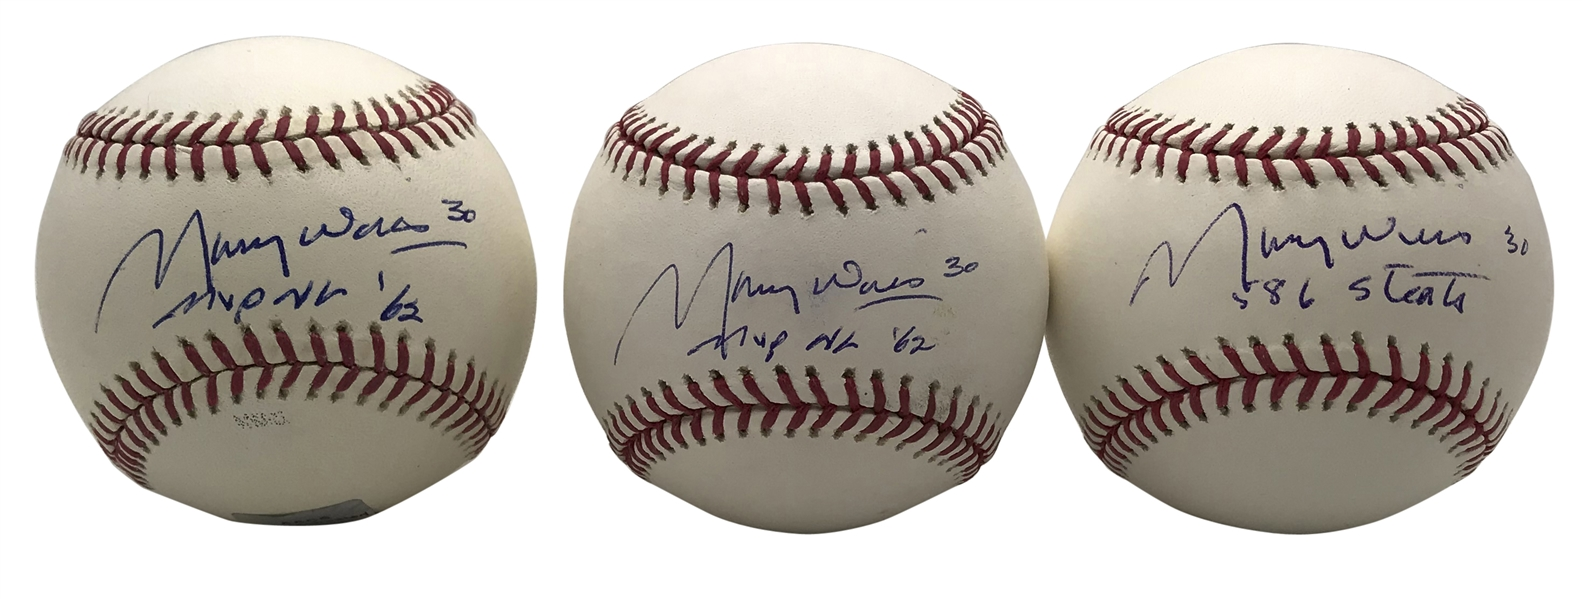 Maury Willis Lot of Five (5) Signed OML Baseballs (Beckett/BAS Guaranteed)